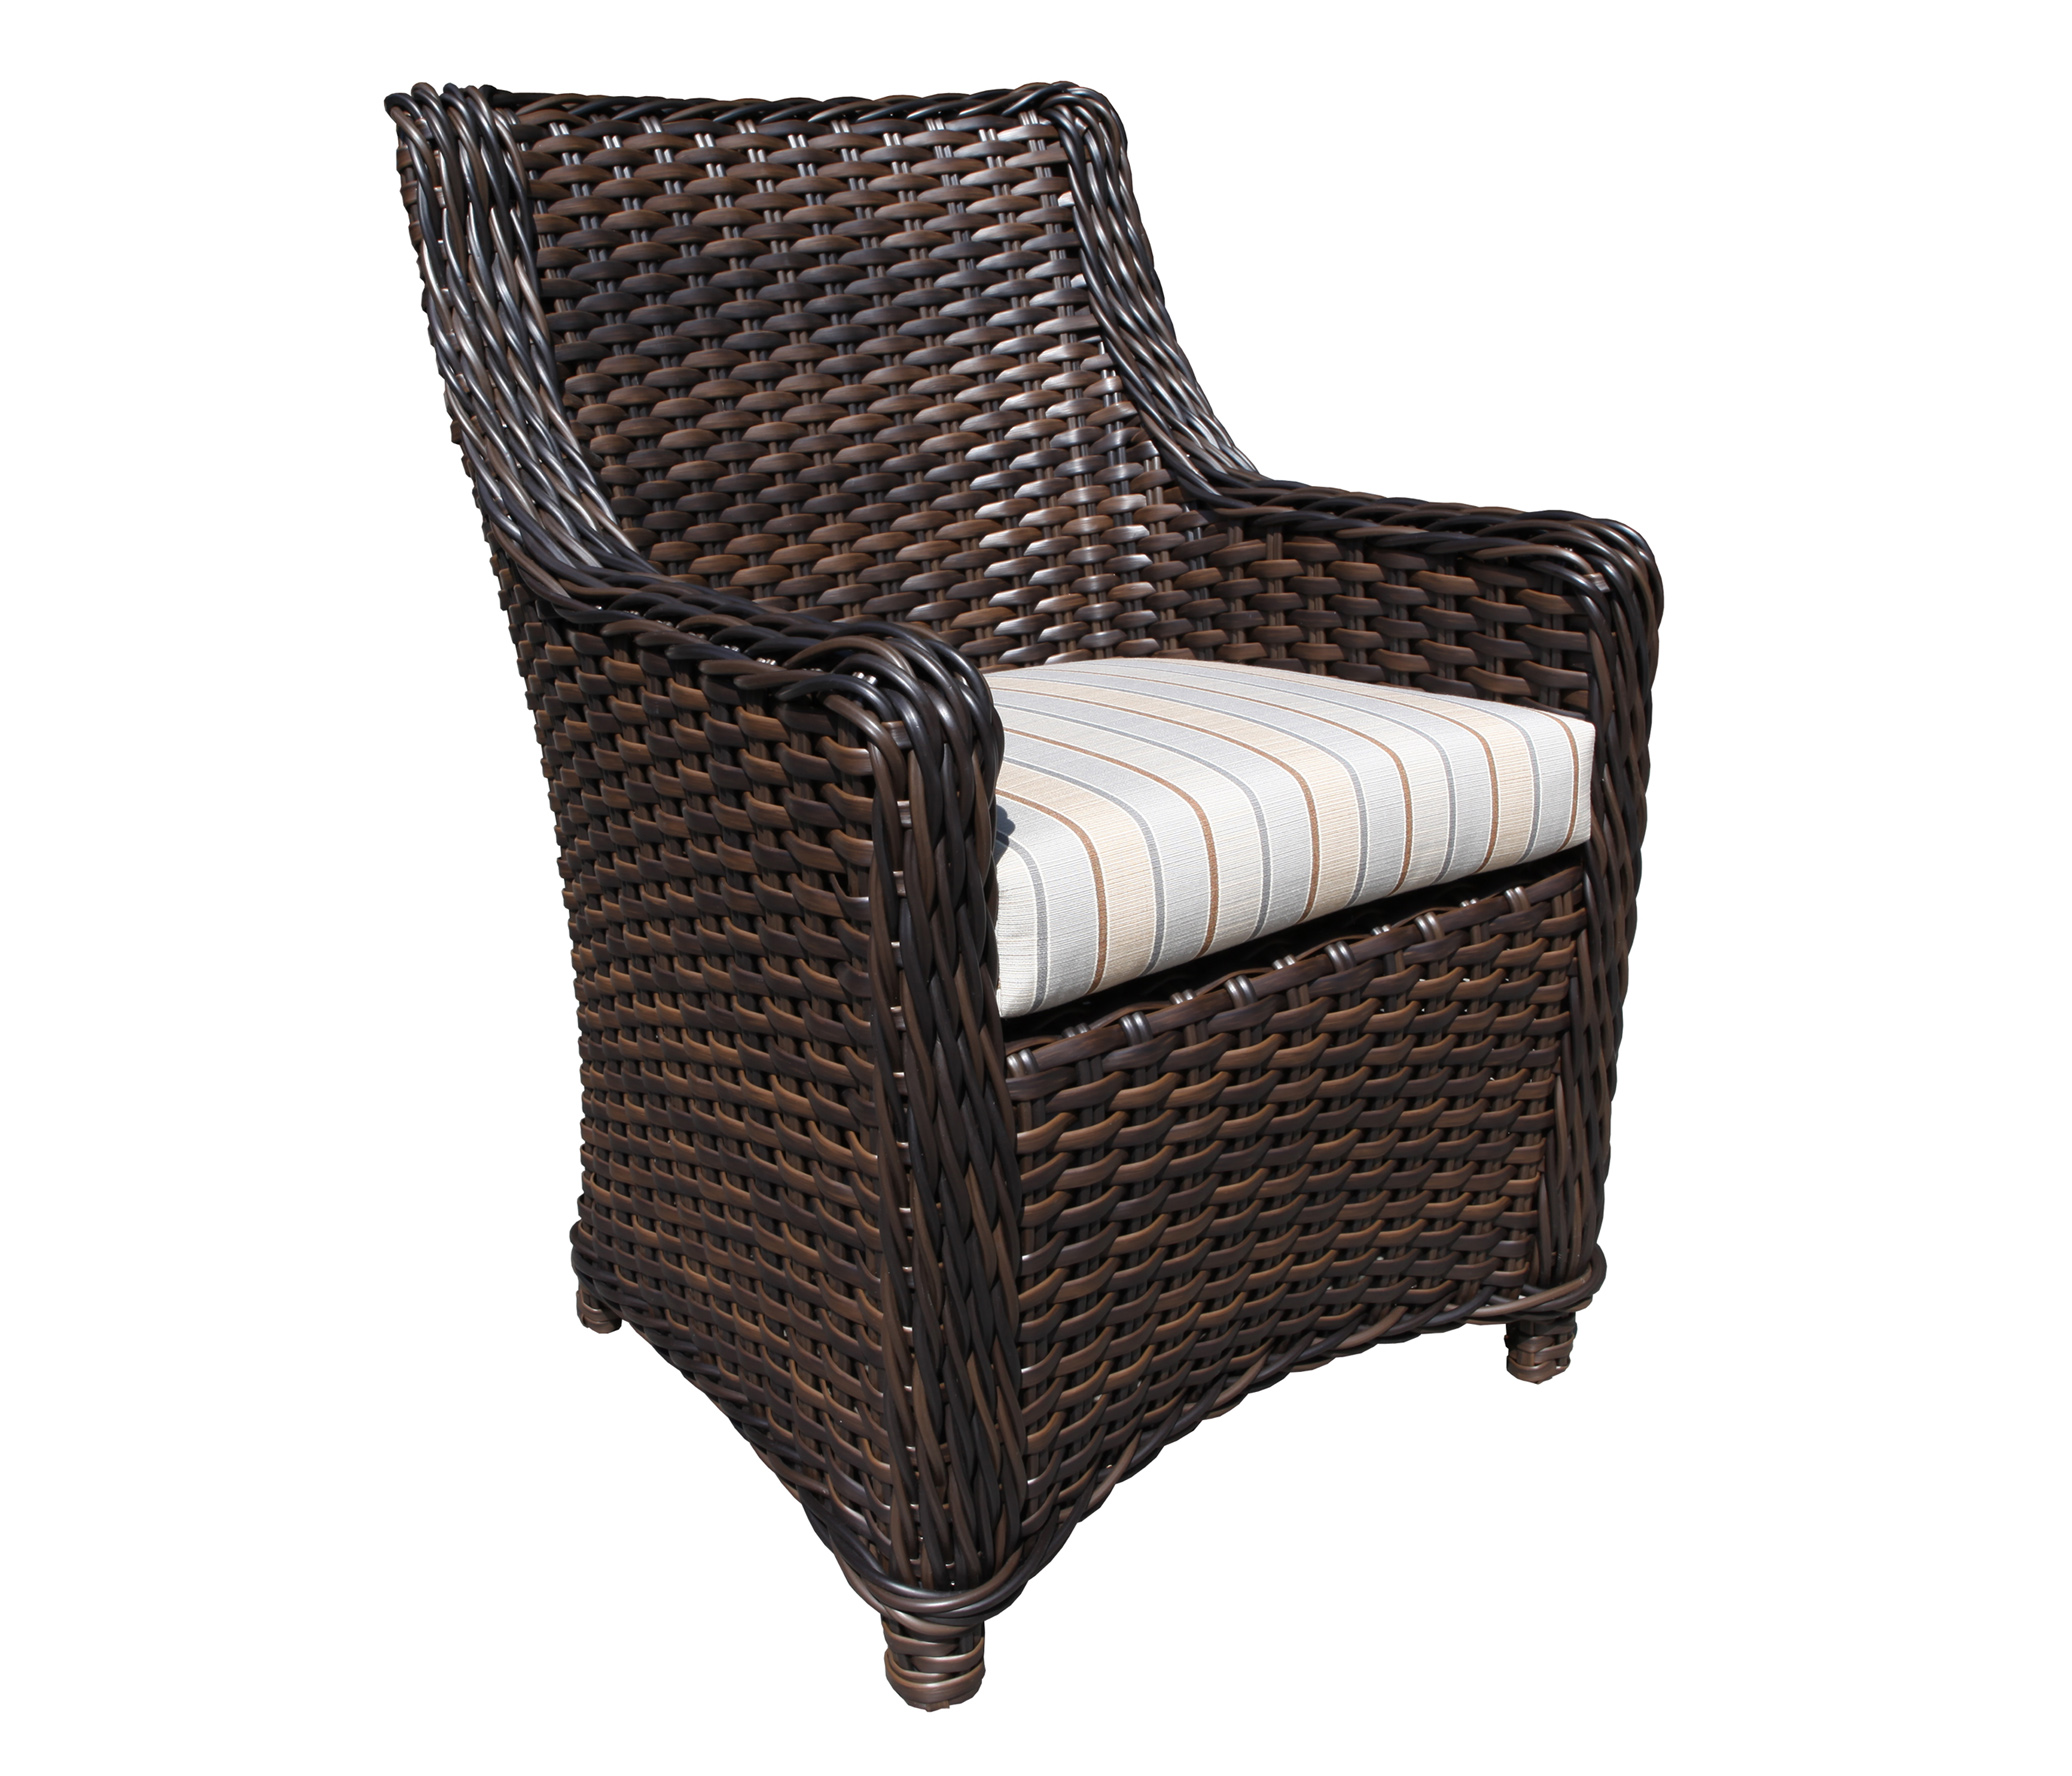 Wicker Patio Chair Nevada Wicker Dining Chair Patio Furniture At Sun Country